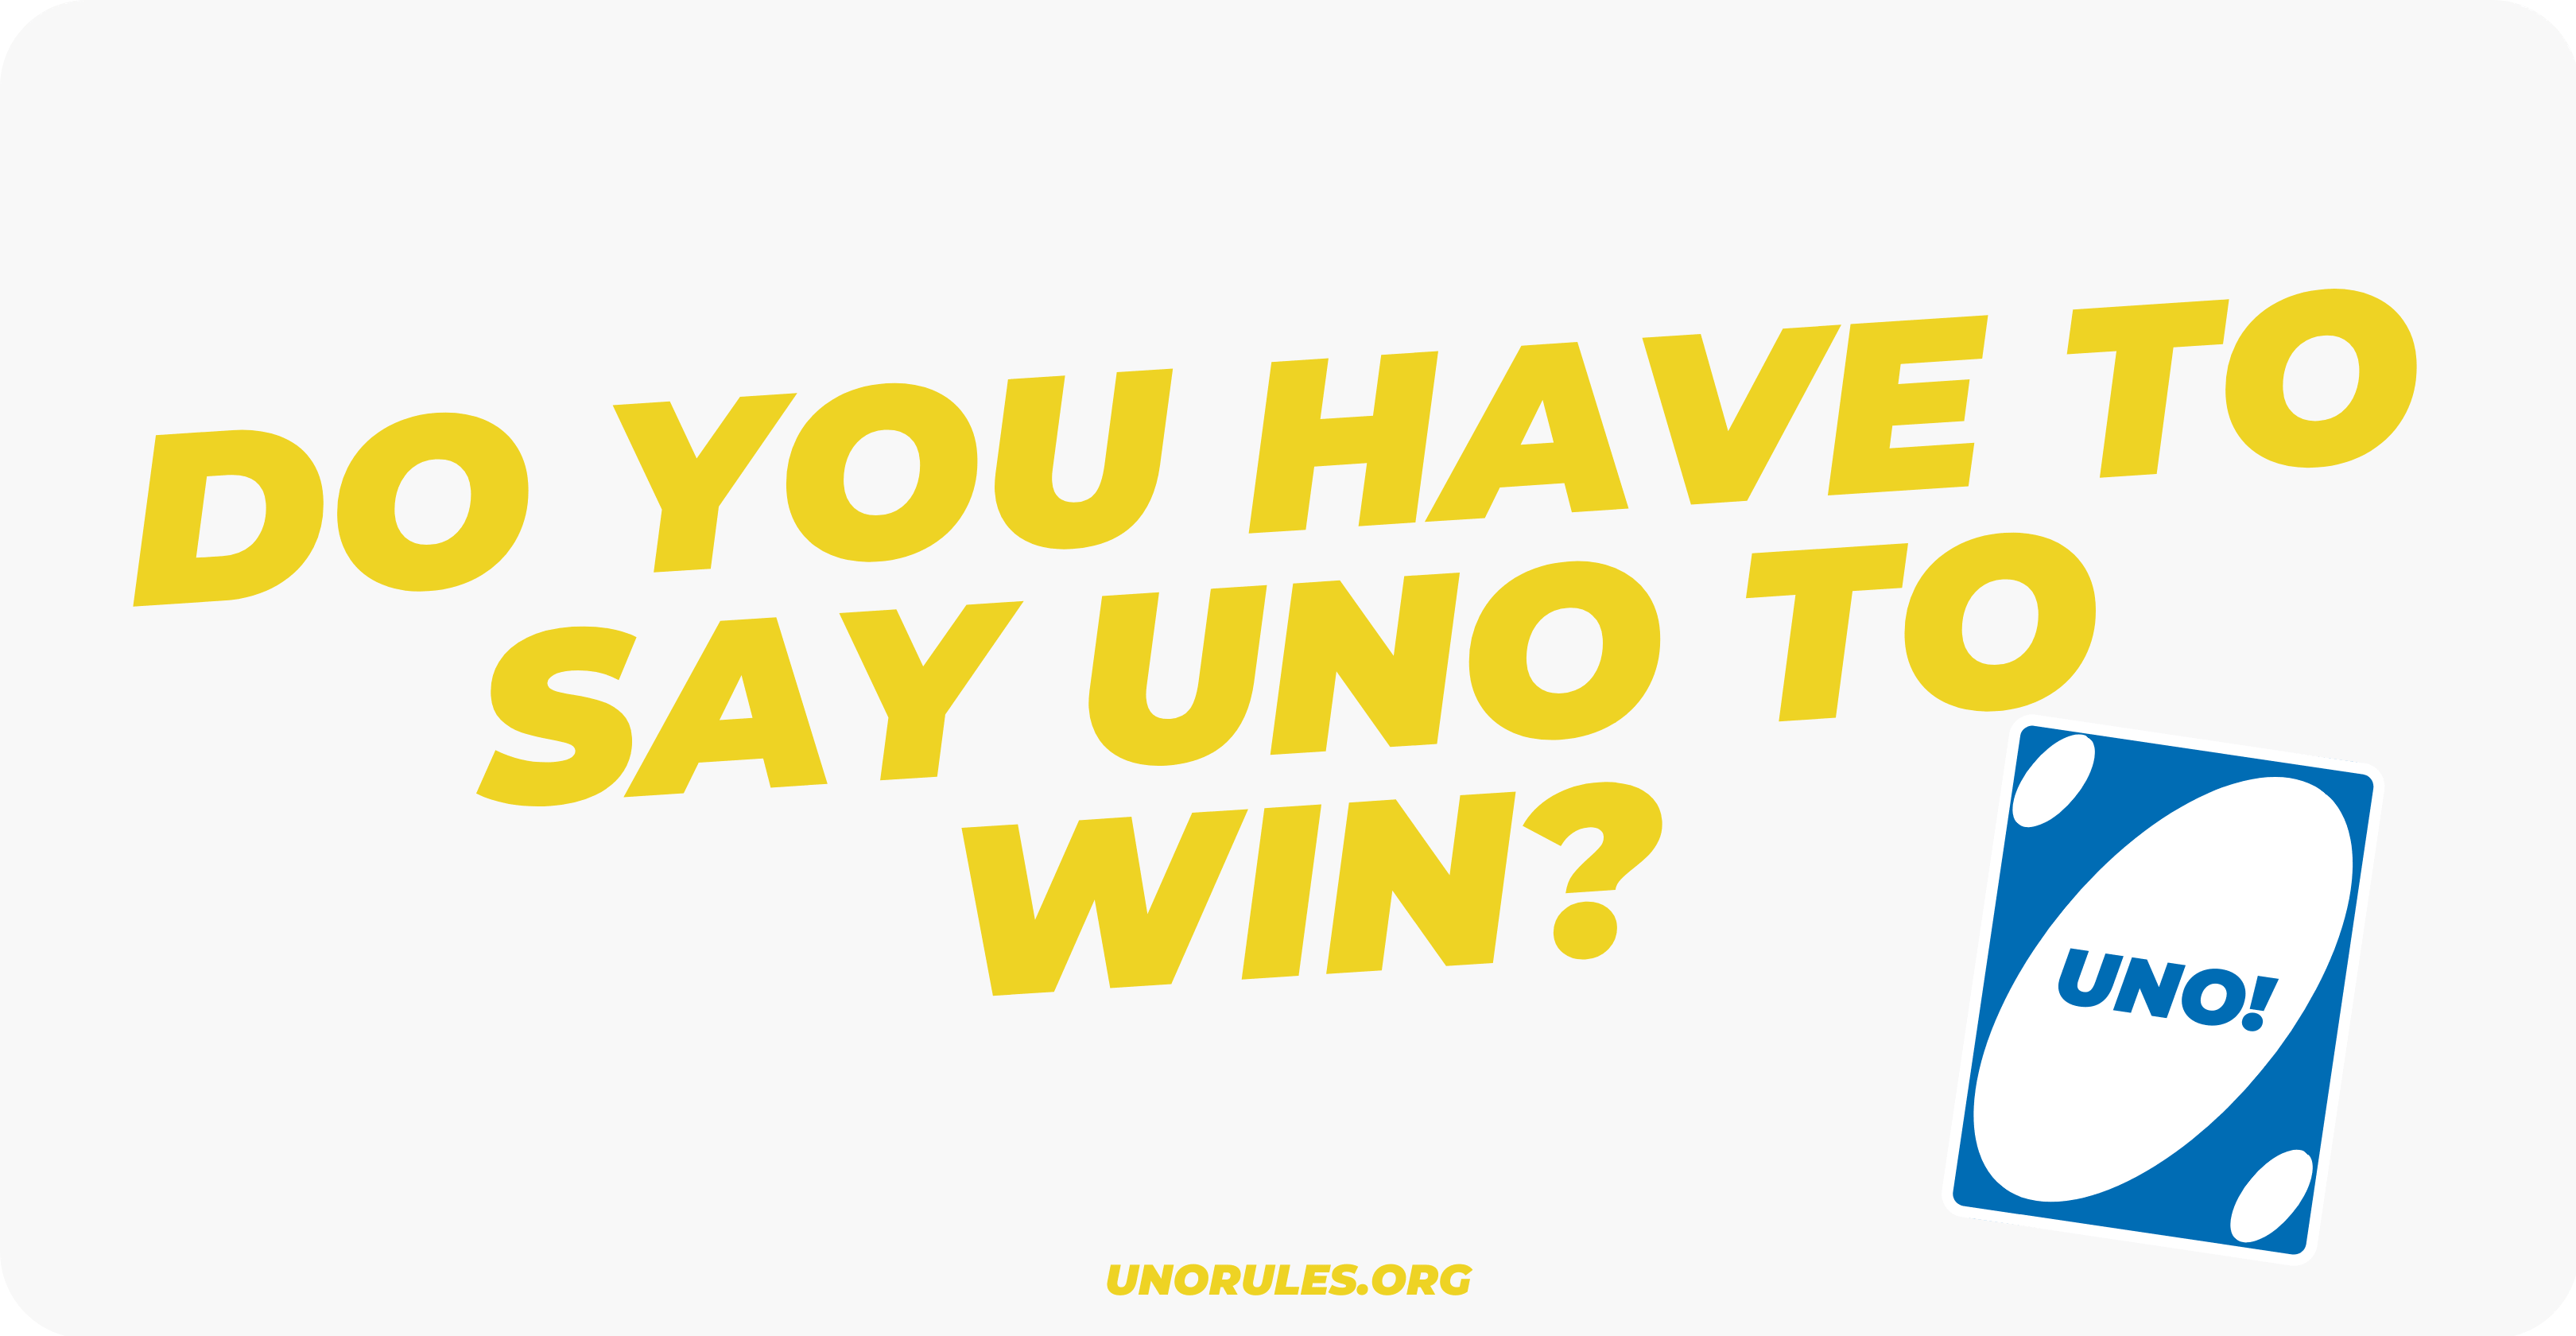 Do you have to say Uno to win